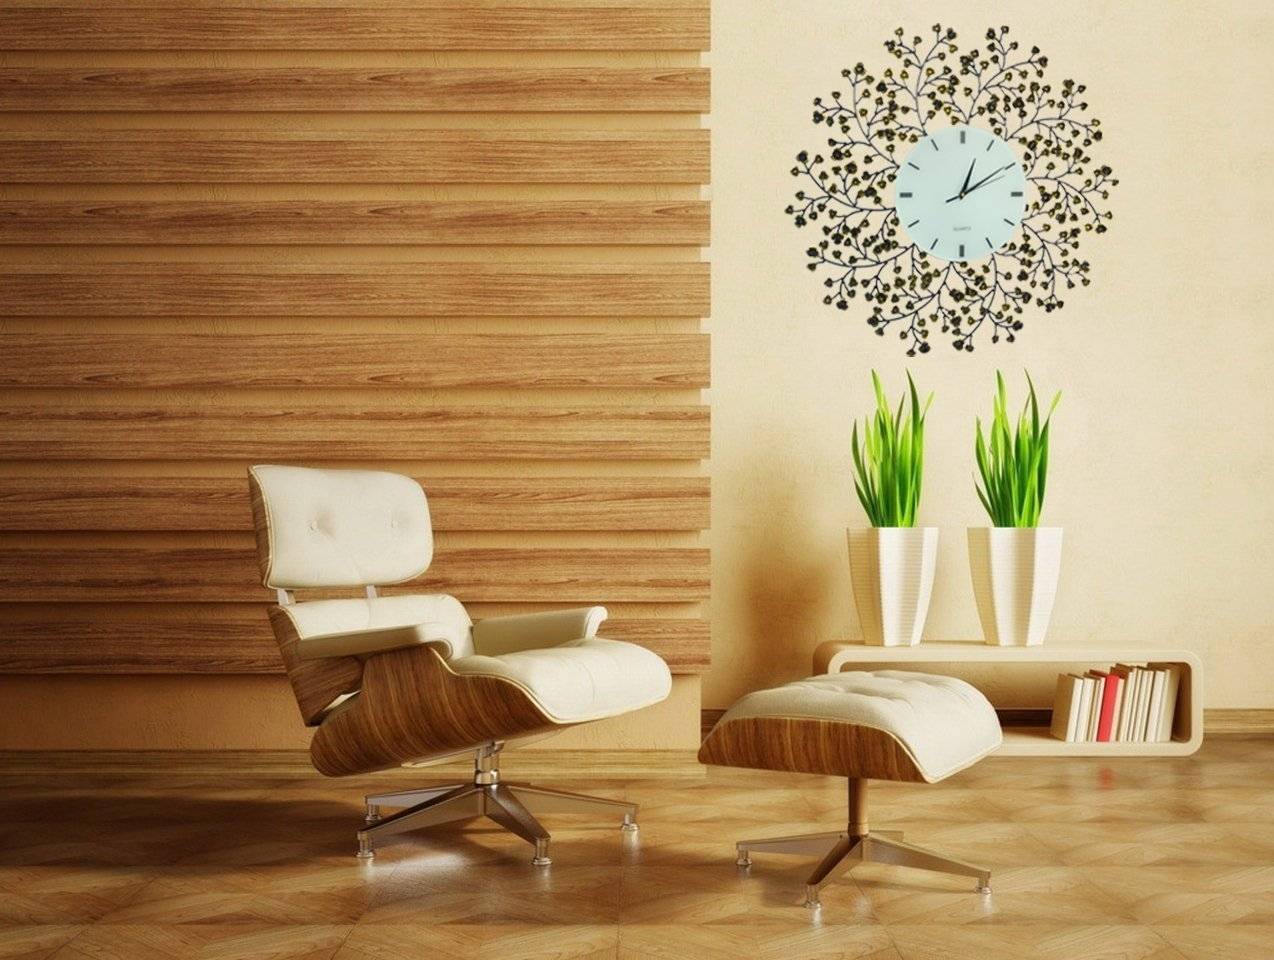 Home Wall Design Photos : Wall designs home designing